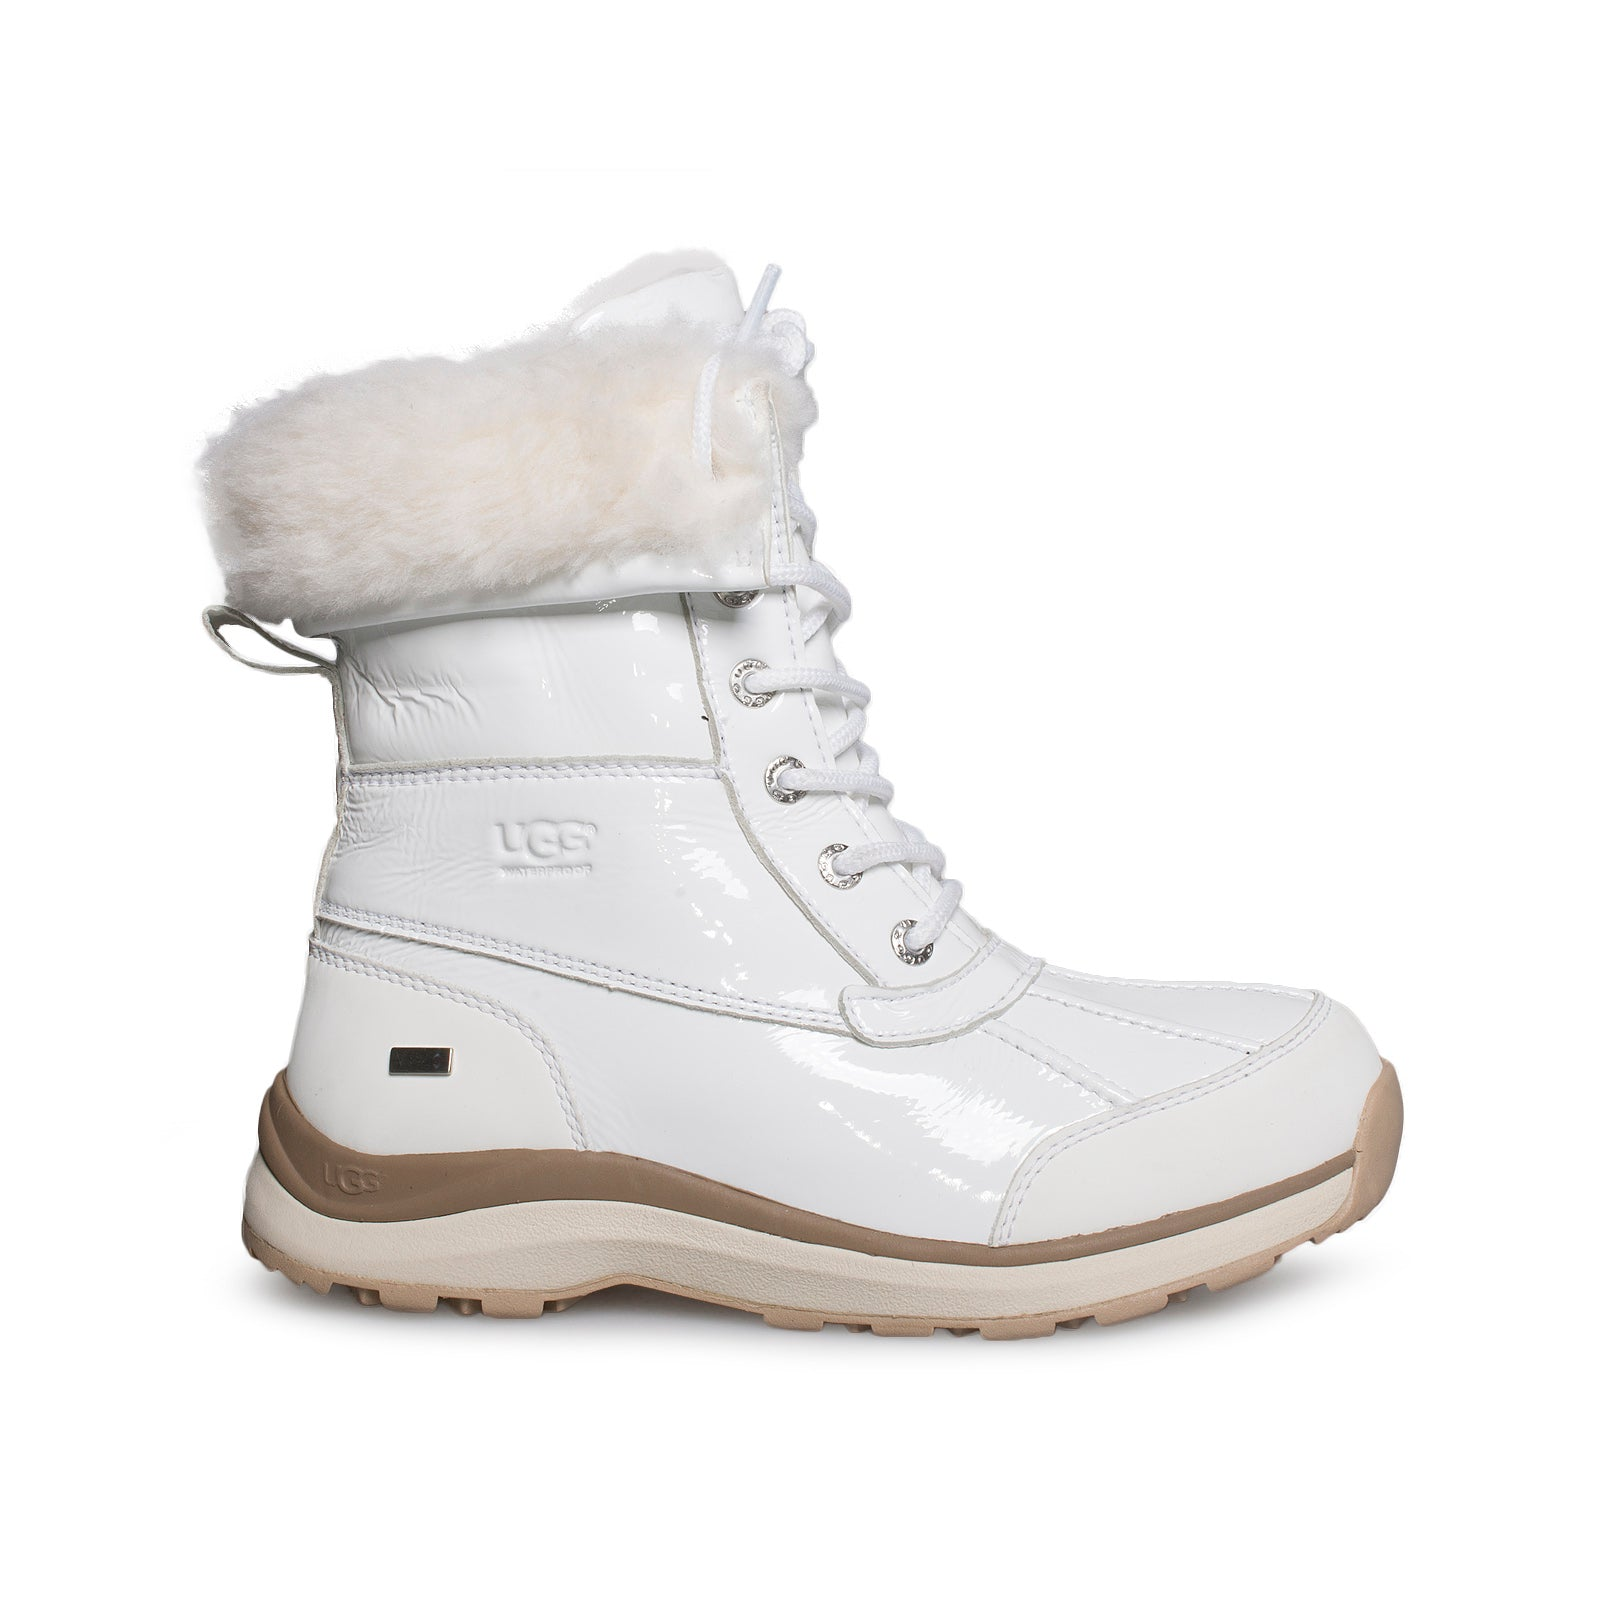 2013a381ced UGG Adirondack III Patent Leather White Boots - Women's